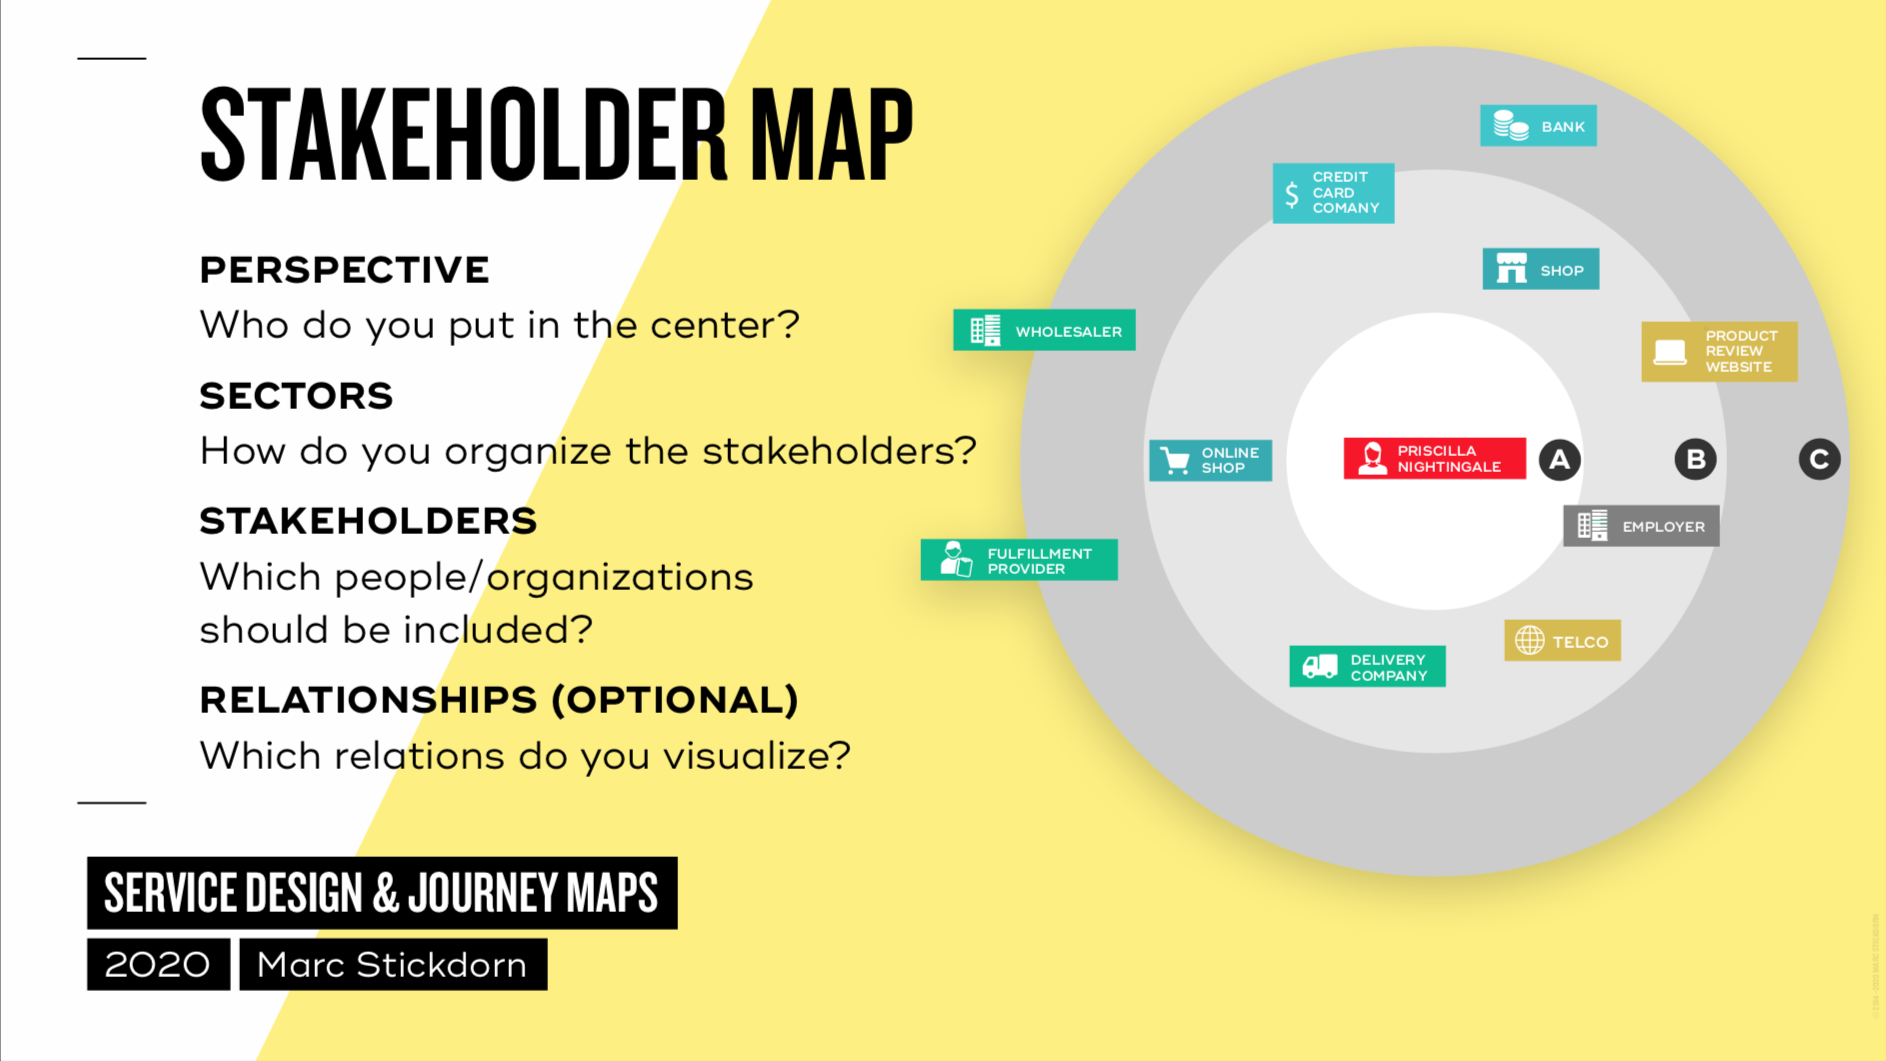 visualization of a stakeholder map on yellow background